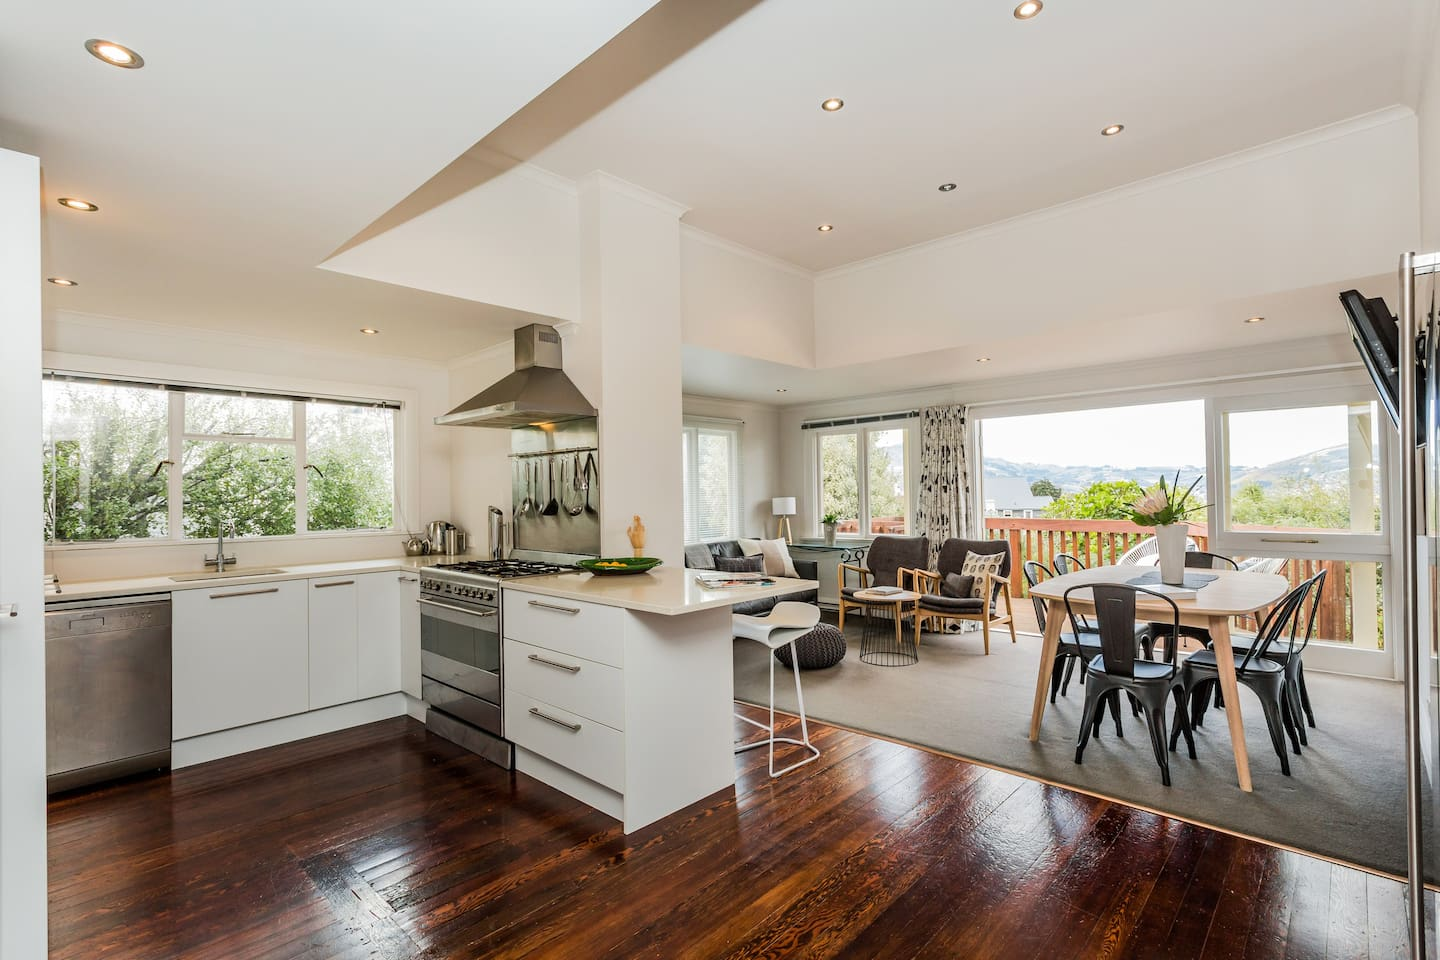 Fully renovated open plan kitchen, dining and living areas